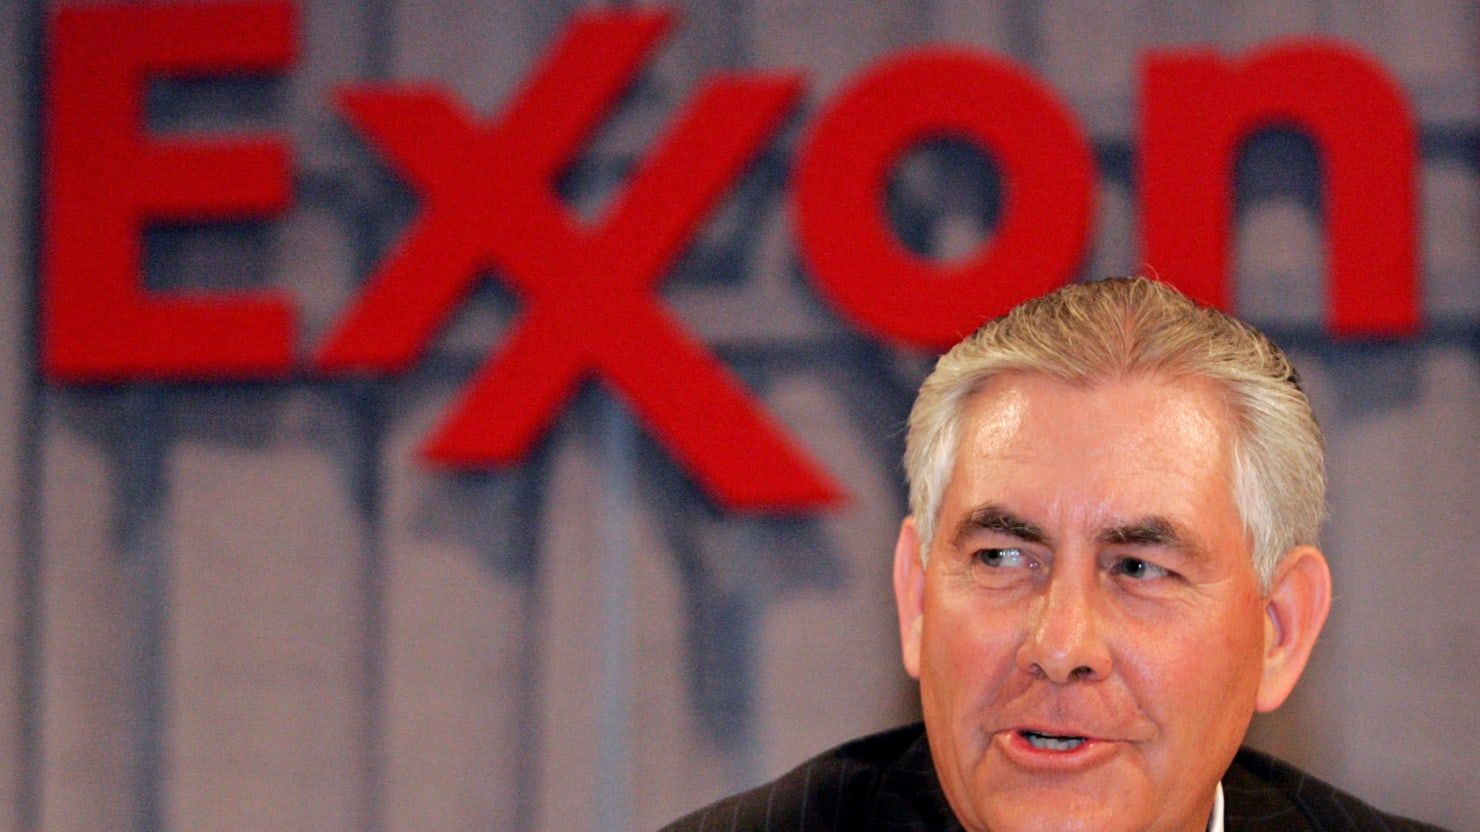 ExxonMobil Gave Big to Senate Panel in Charge of Rex Tillerson's Confirmation